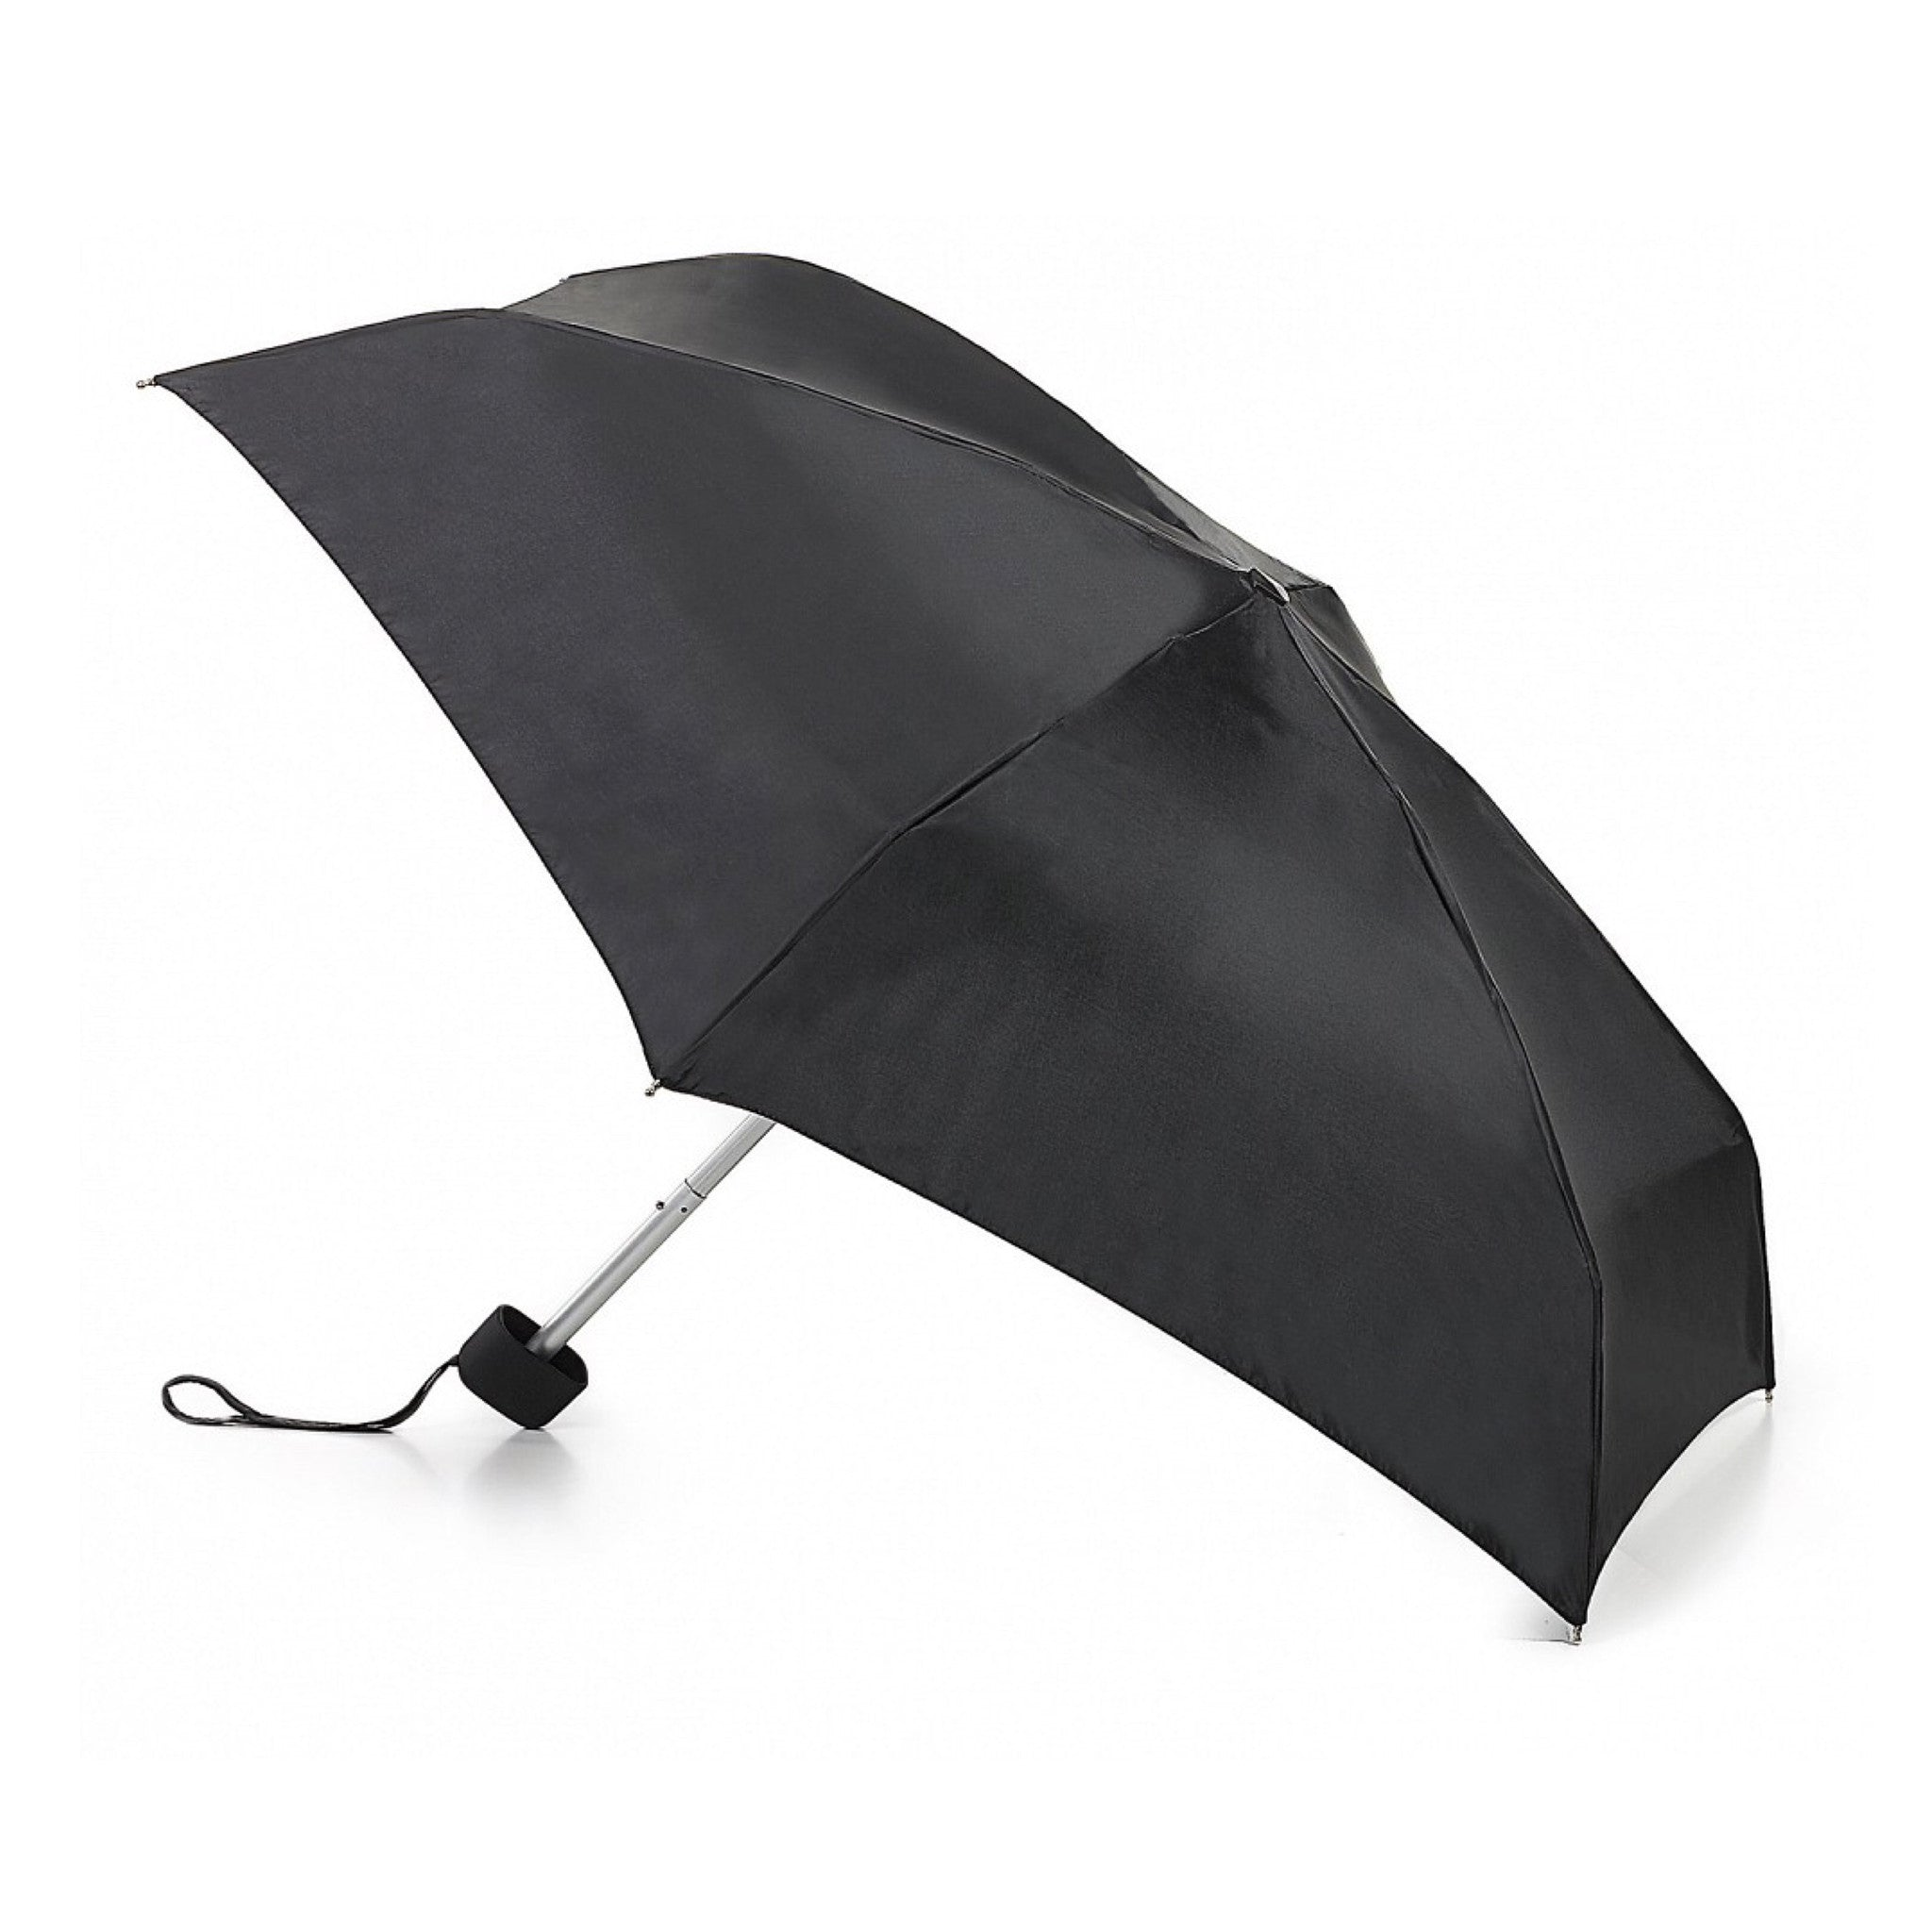 Tiny-1 Umbrella - Black